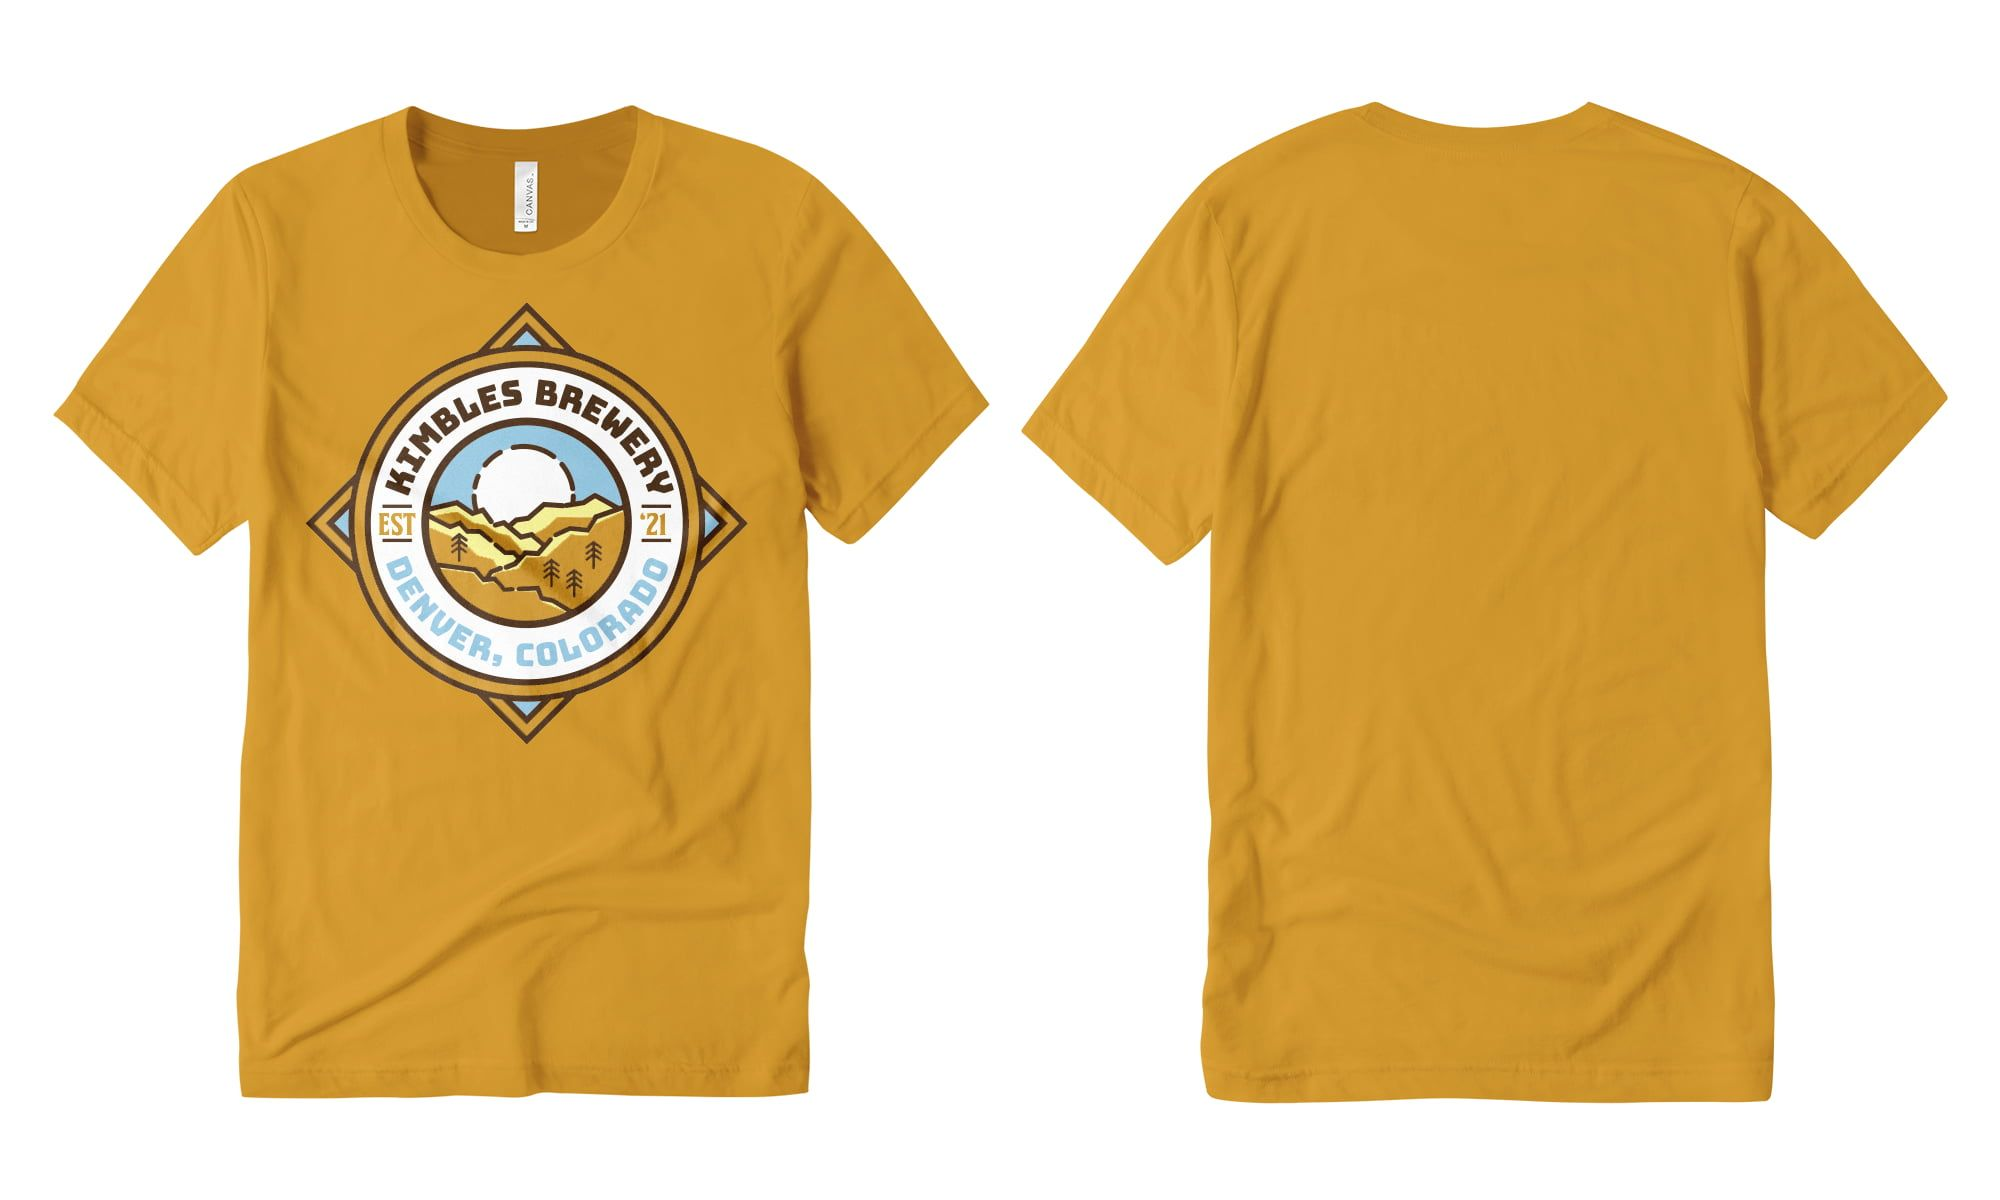 Example of t-shirt design with full front print.